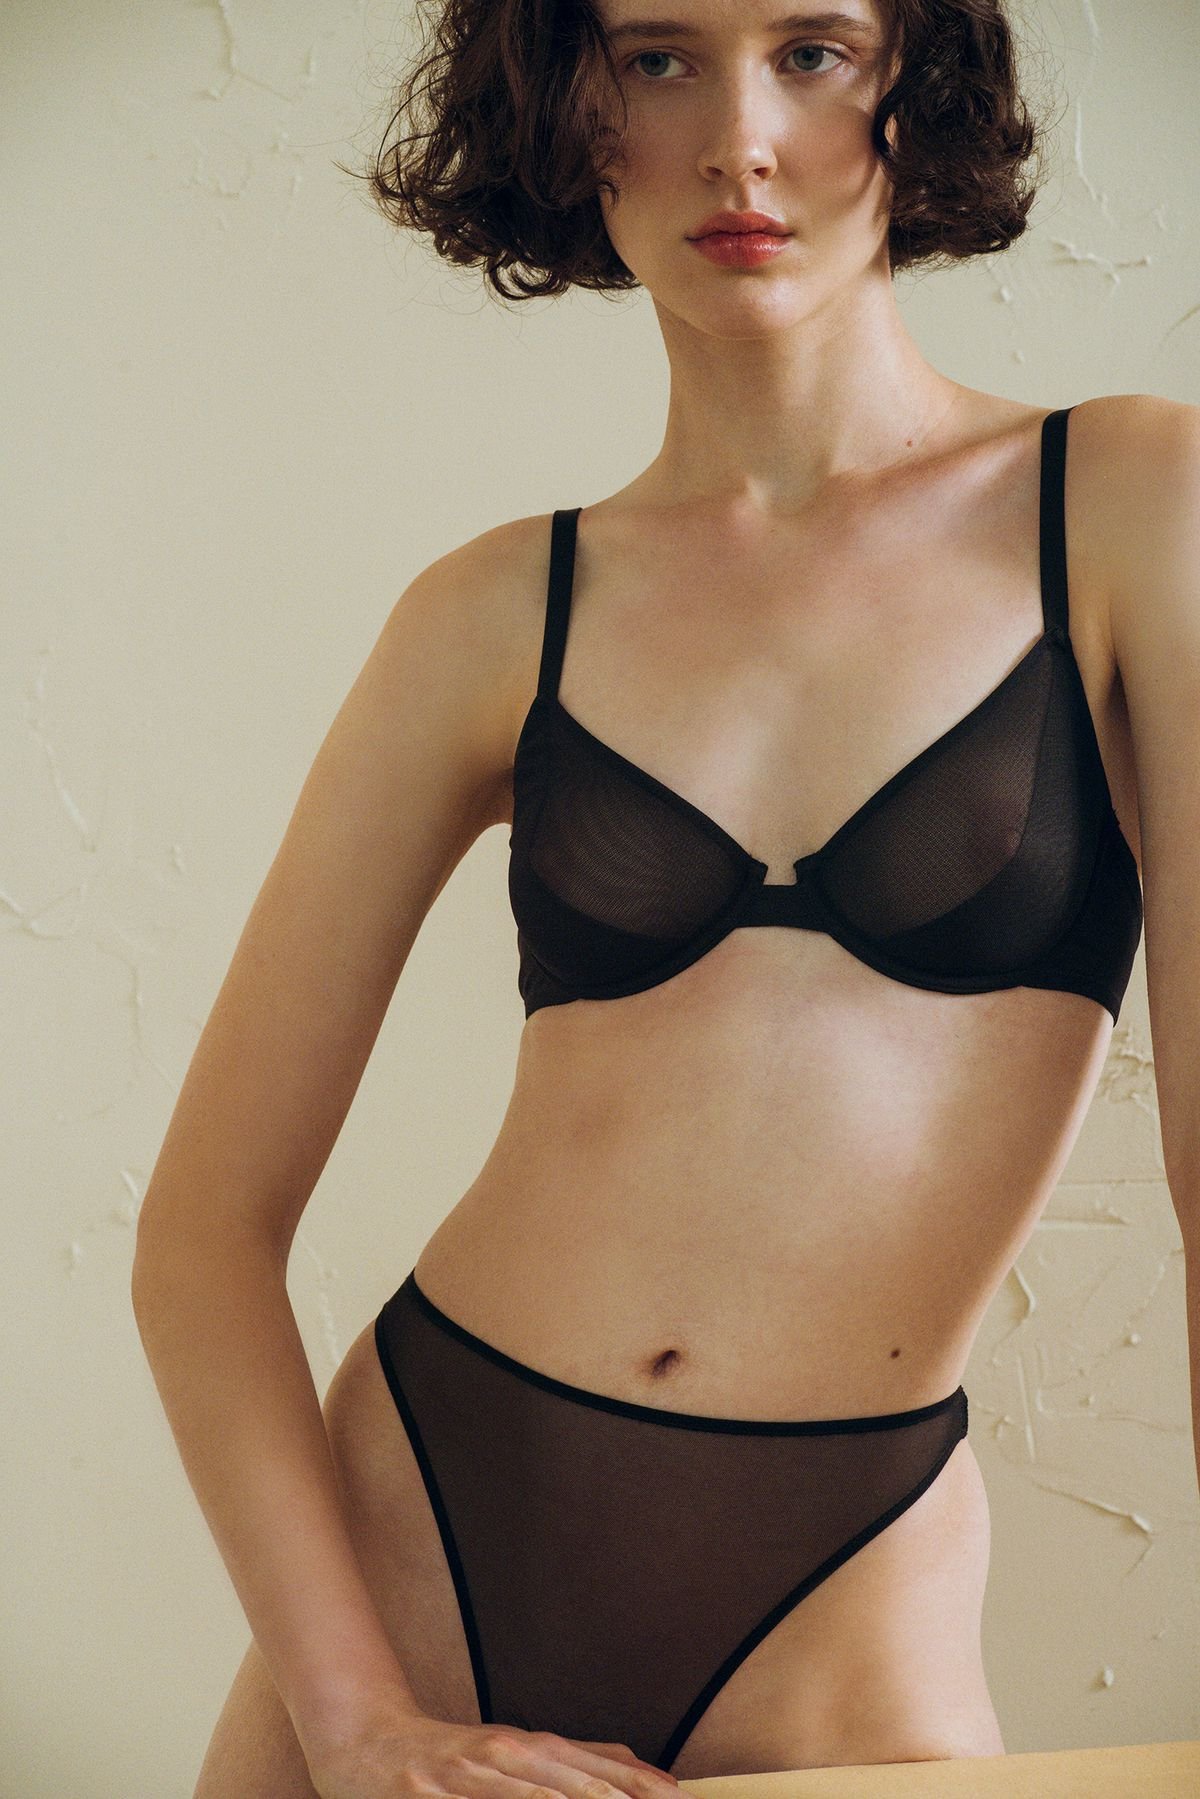 e02b8dbbdc7 A model in a sheer black lingerie set from The Great Eros